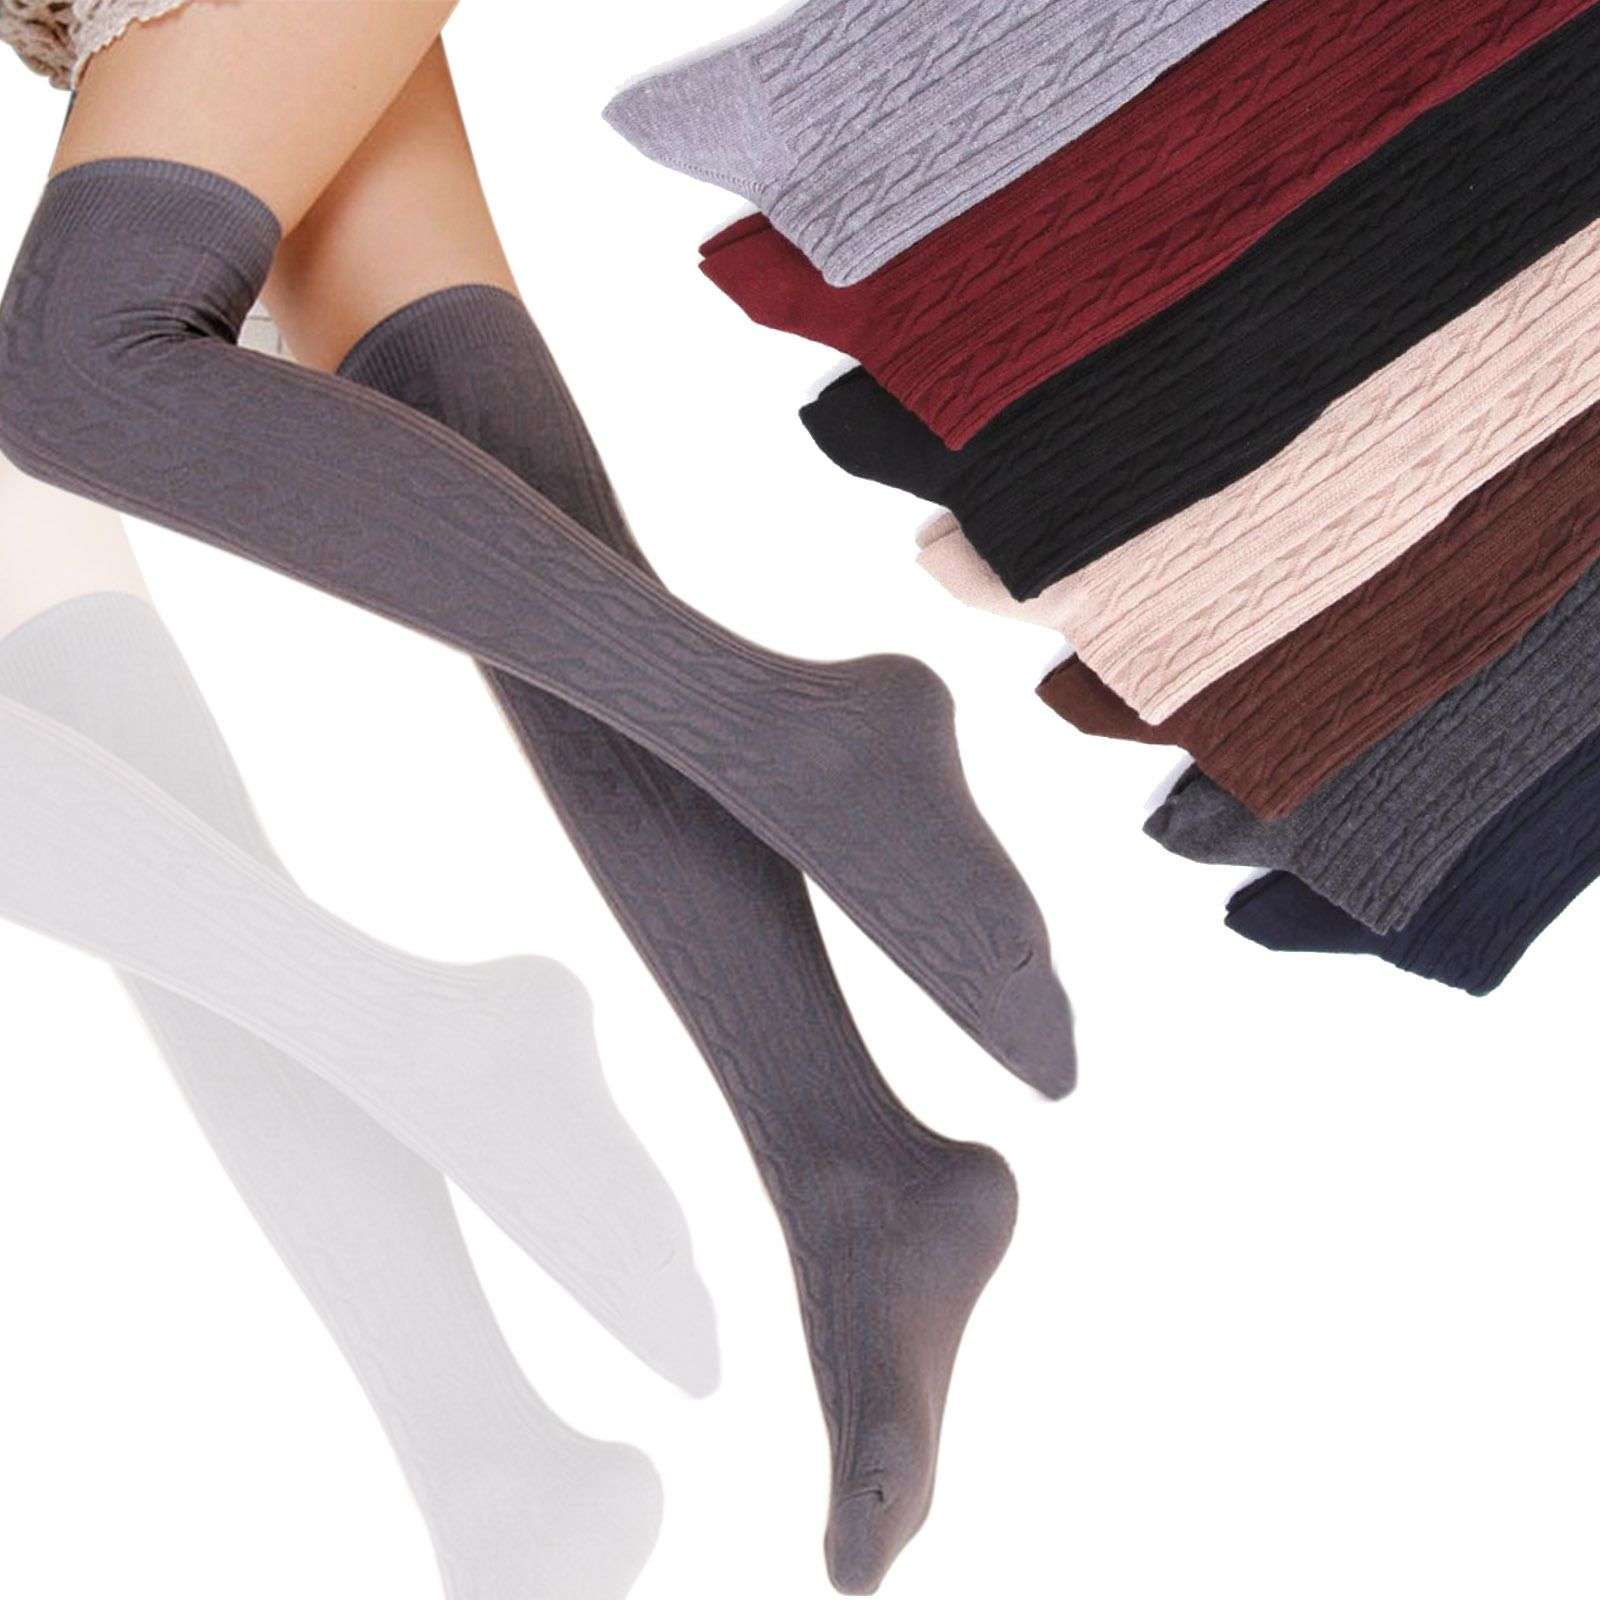 LADIES OVER THE KNEE SOCKS STOCKINGS THIGH HIGH WITH STRIPES HOLD UP